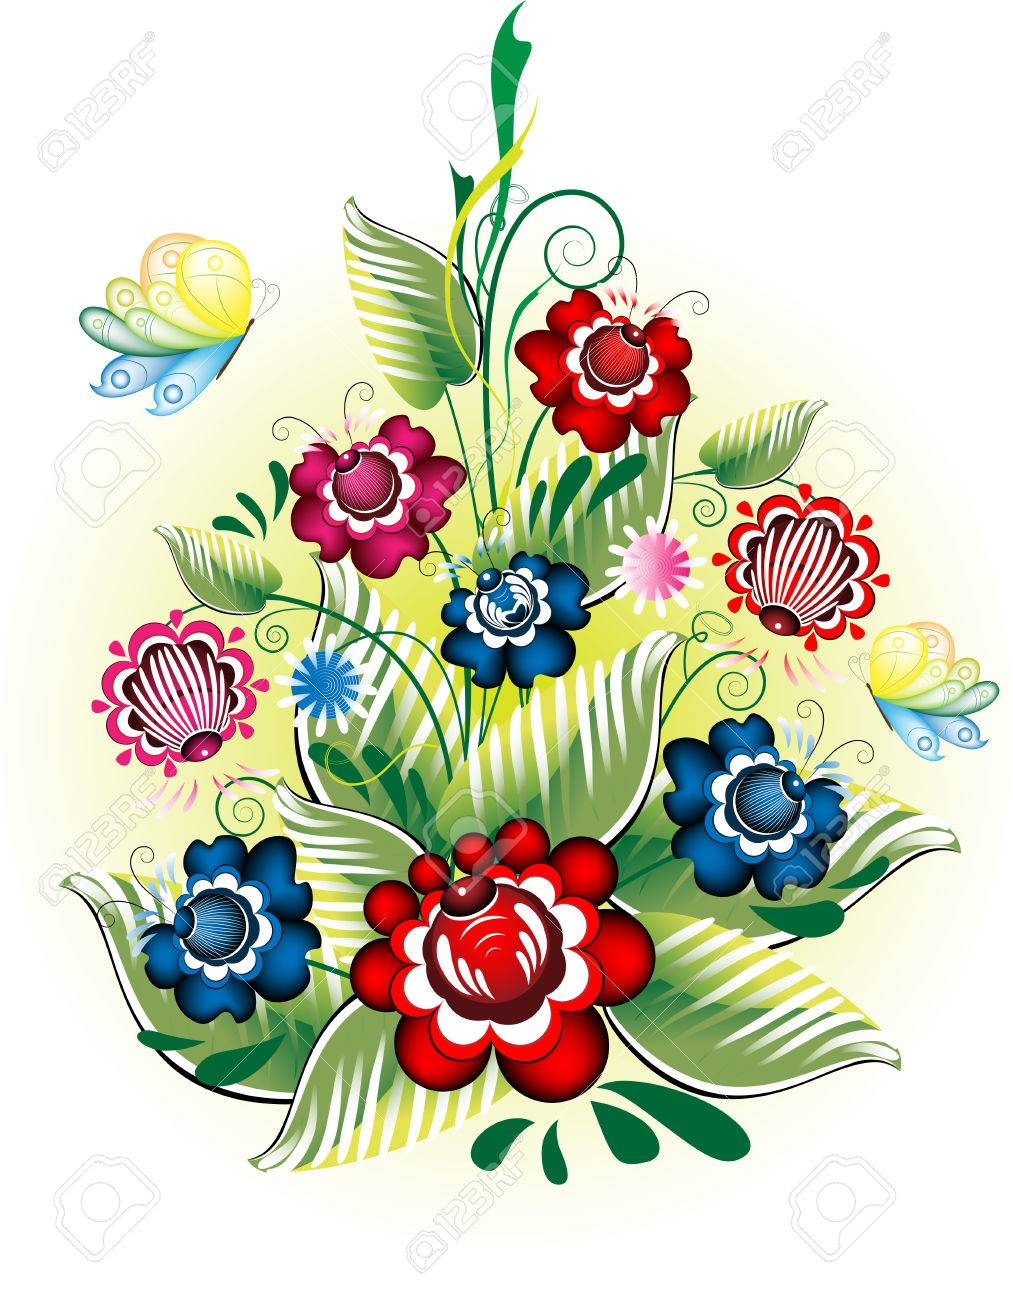 Decorative flowers in national style with butterflies on a light background Stock Vector - 6785377